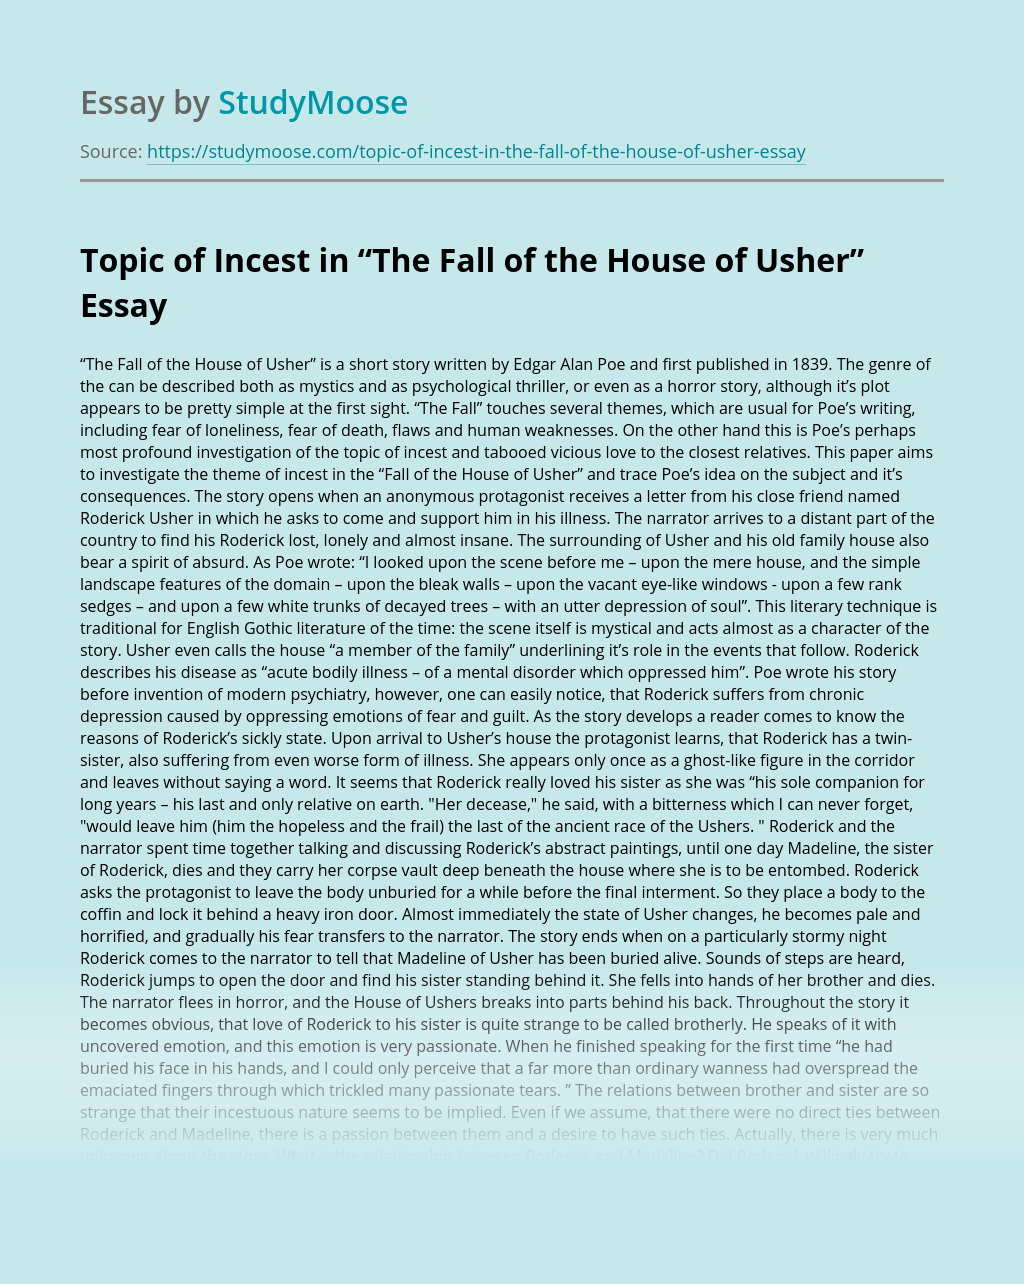 """Topic of Incest in """"The Fall of the House of Usher"""""""